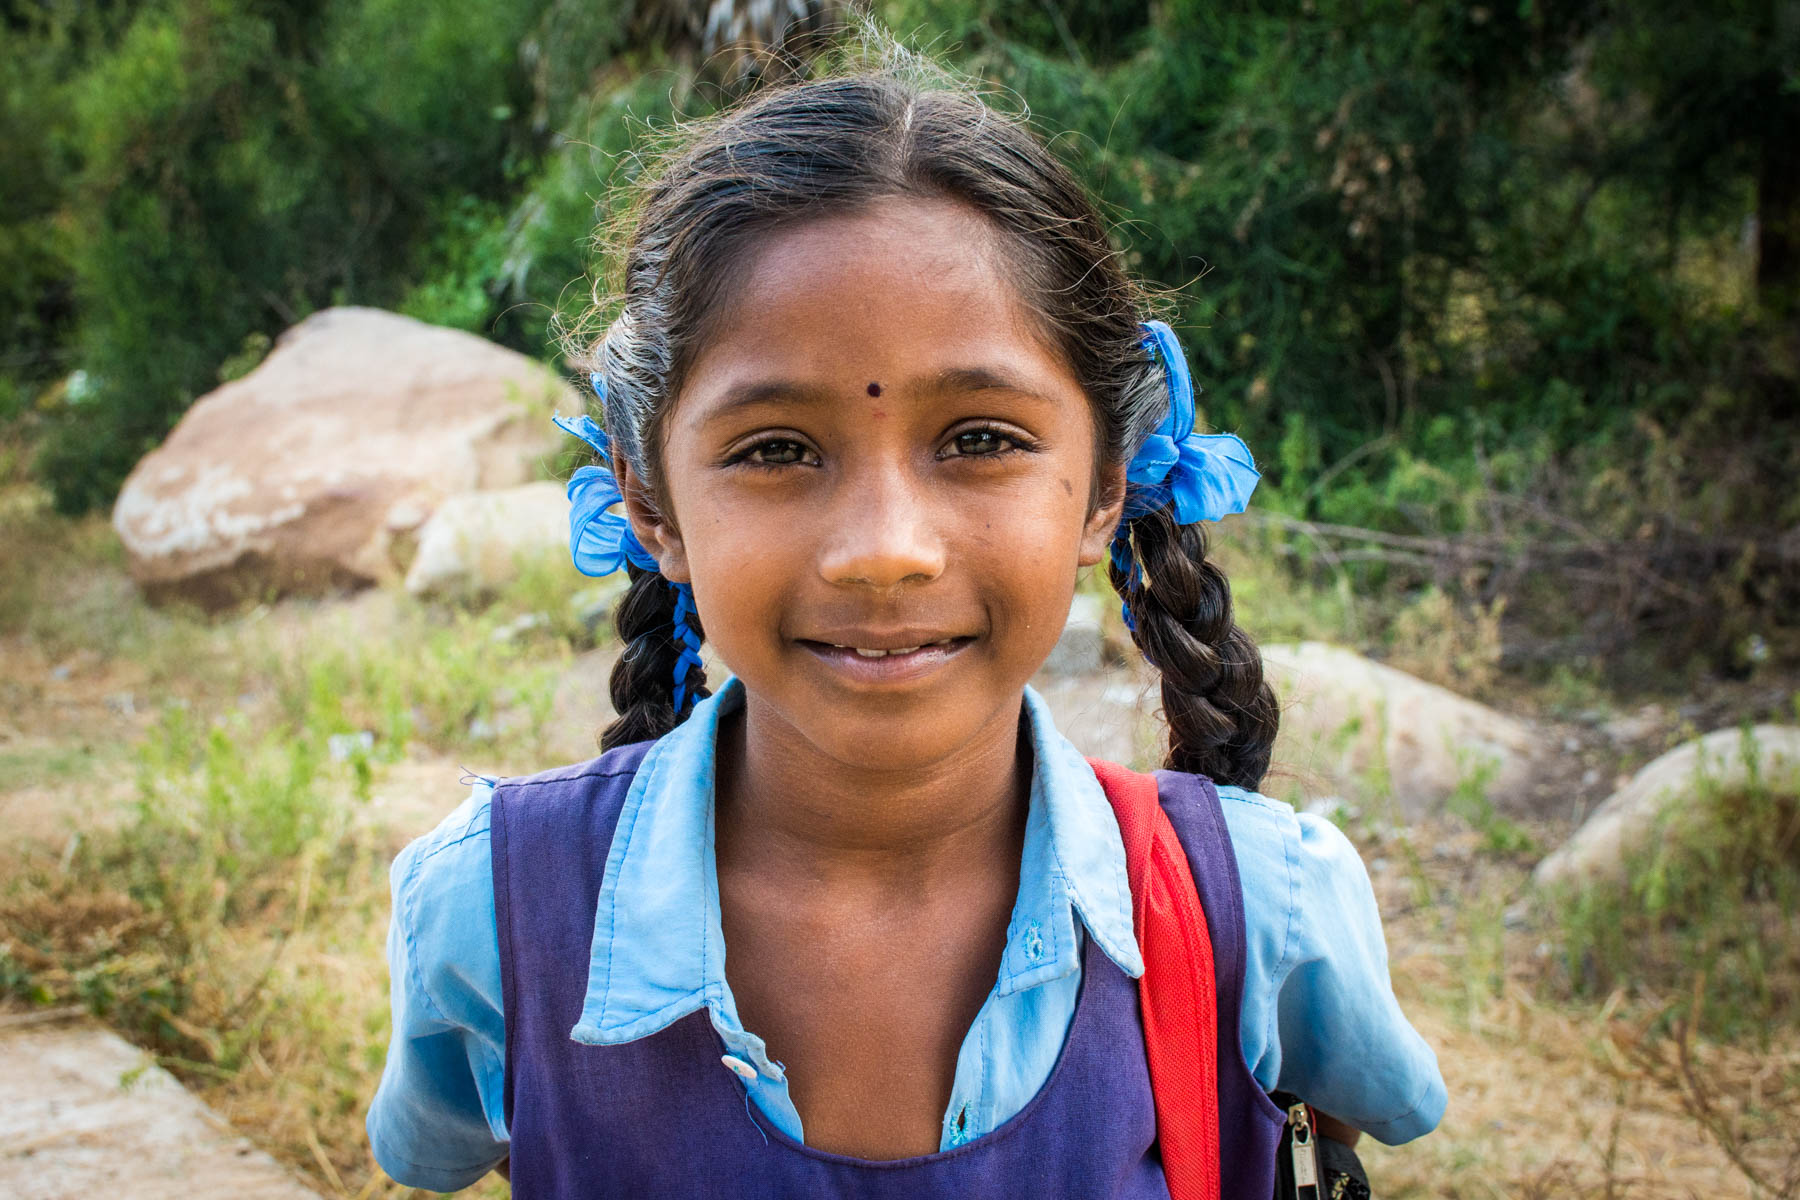 Schoolgirl in Hampi, India - Lost With Purpose